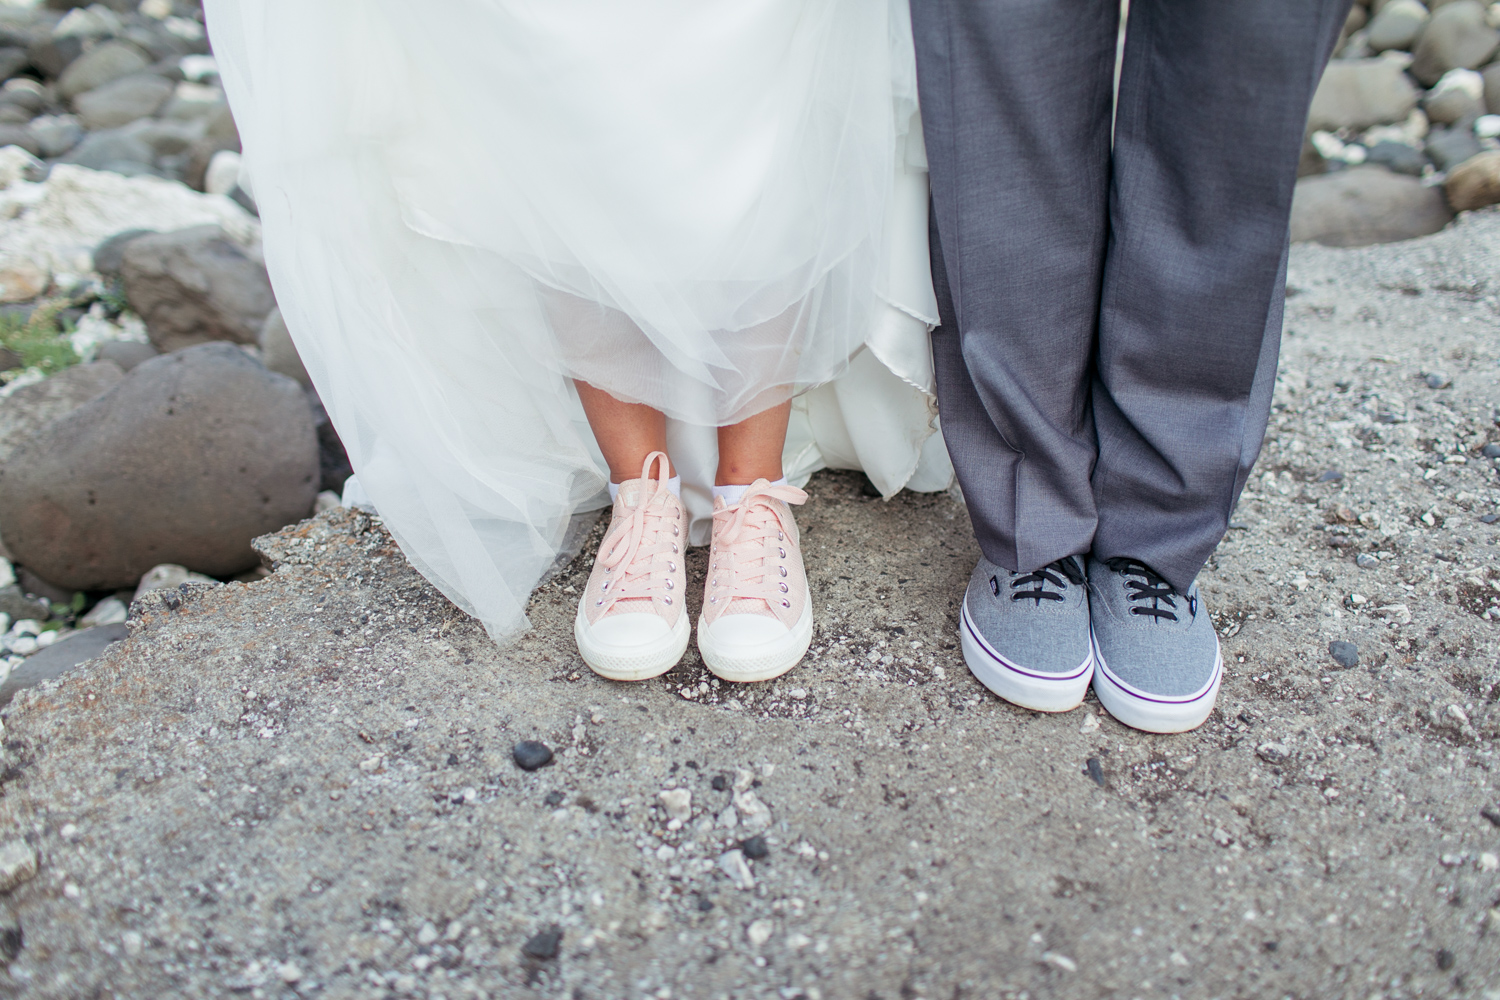 bride and groom shoes pink converse for the bride and grey converse for the groom